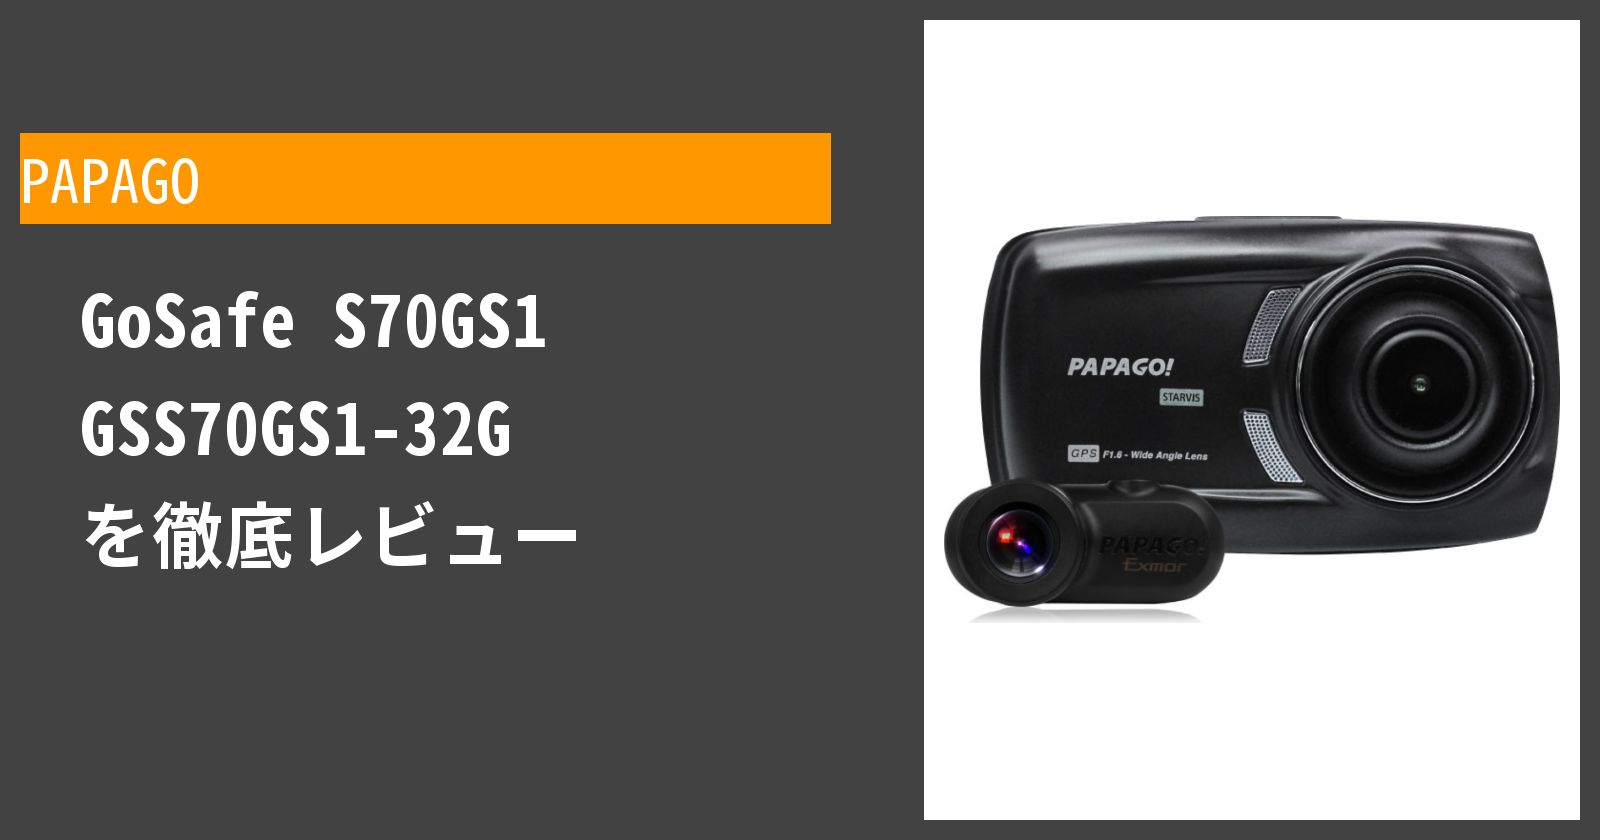 GoSafe S70GS1 GSS70GS1-32Gを徹底評価